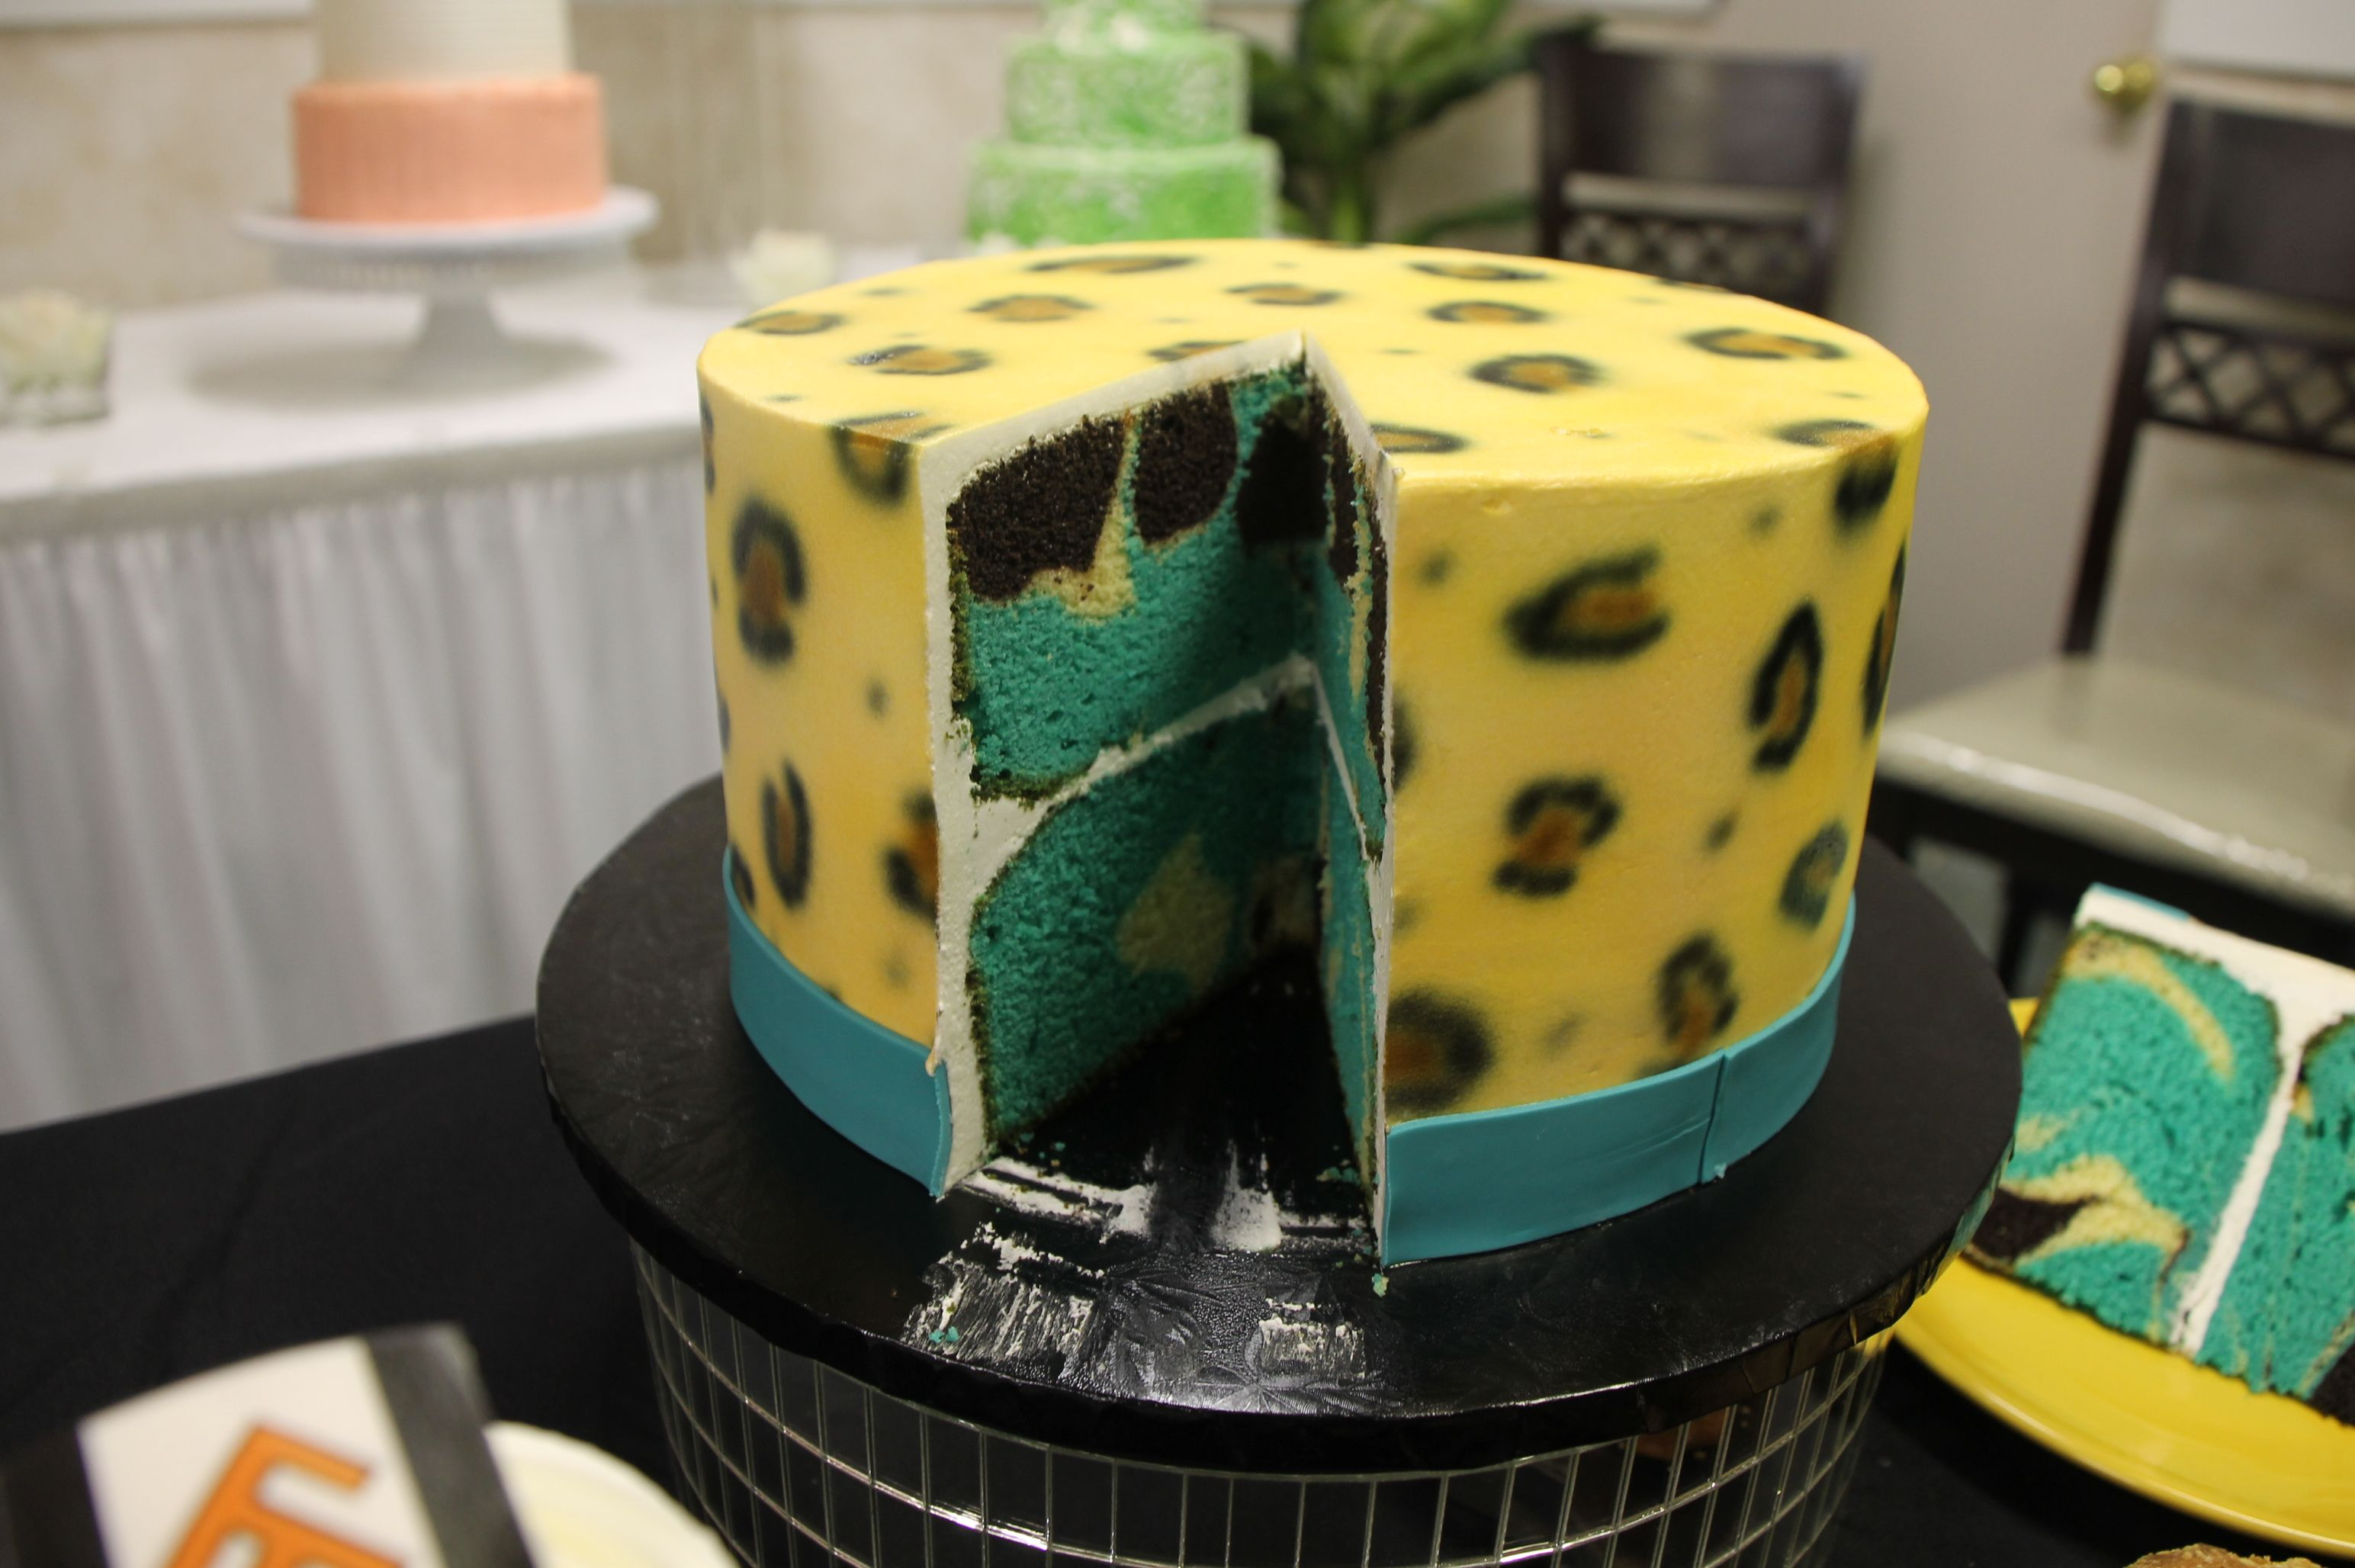 Miraculous Inside And Out Jags Cake Edgewood Bakery 1012 Edgewood Ave S Personalised Birthday Cards Paralily Jamesorg